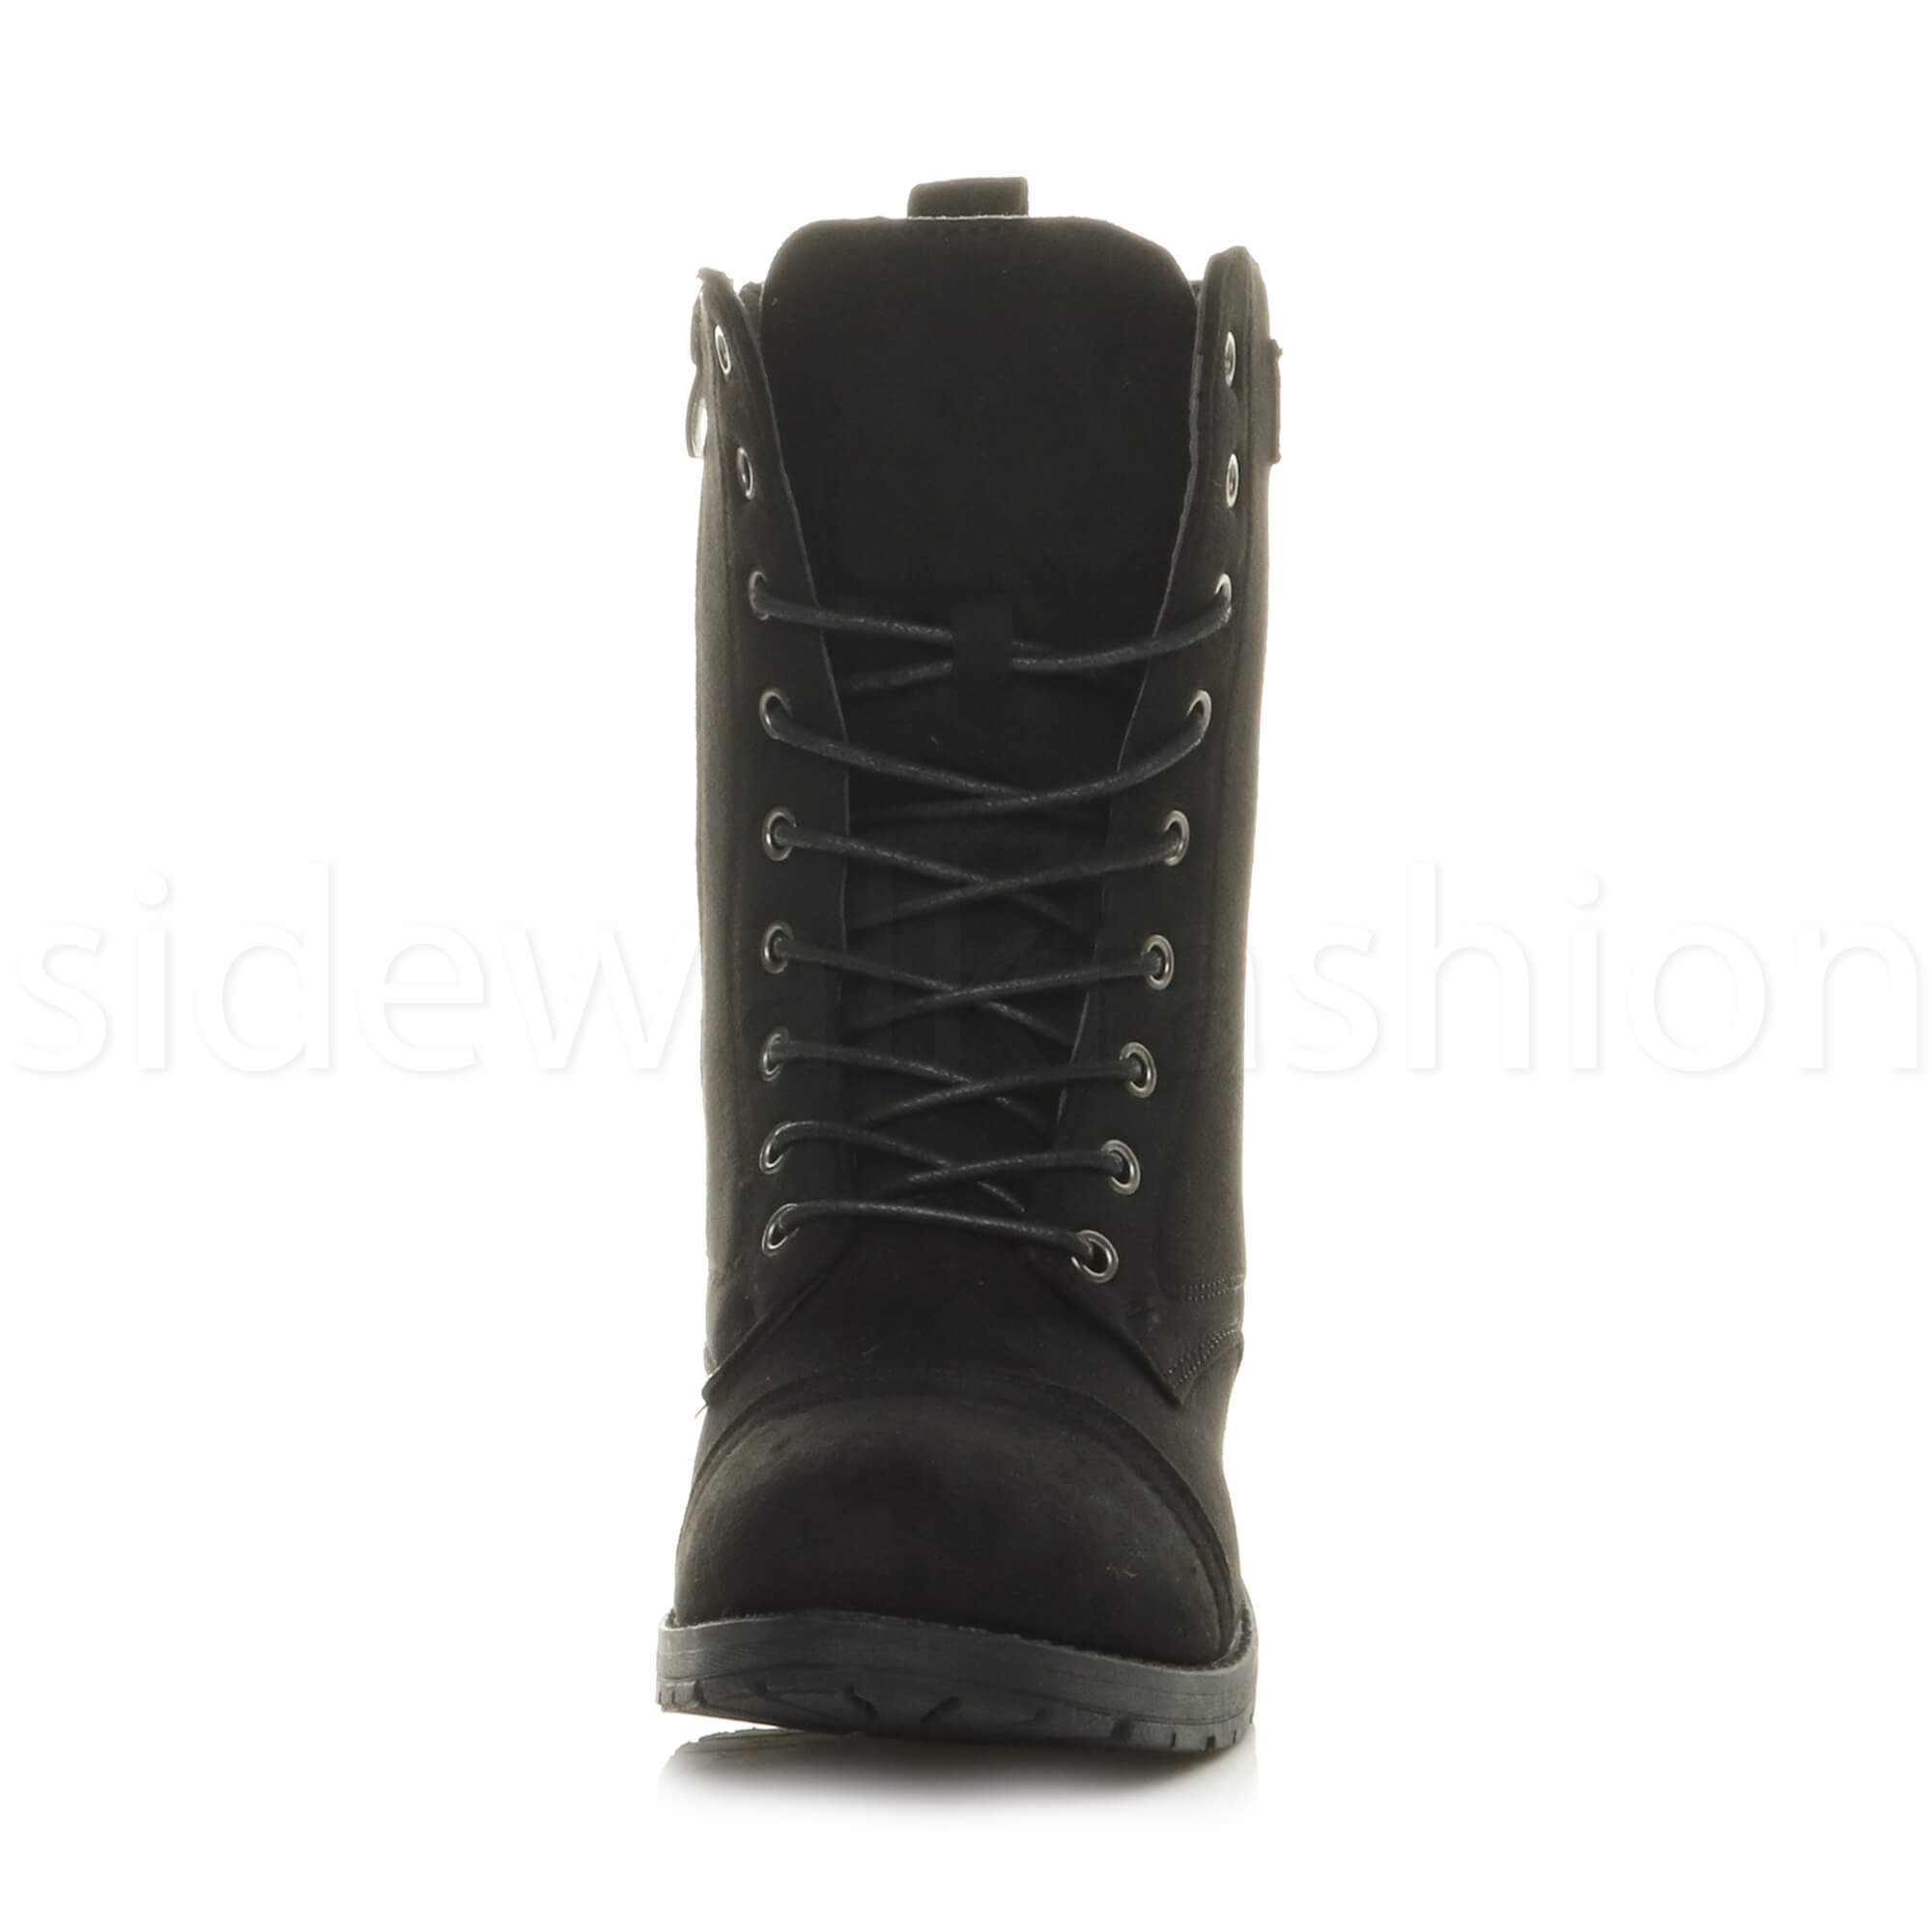 Womens-ladies-low-heel-flat-lace-up-zip-combat-biker-military-ankle-boots-size thumbnail 31